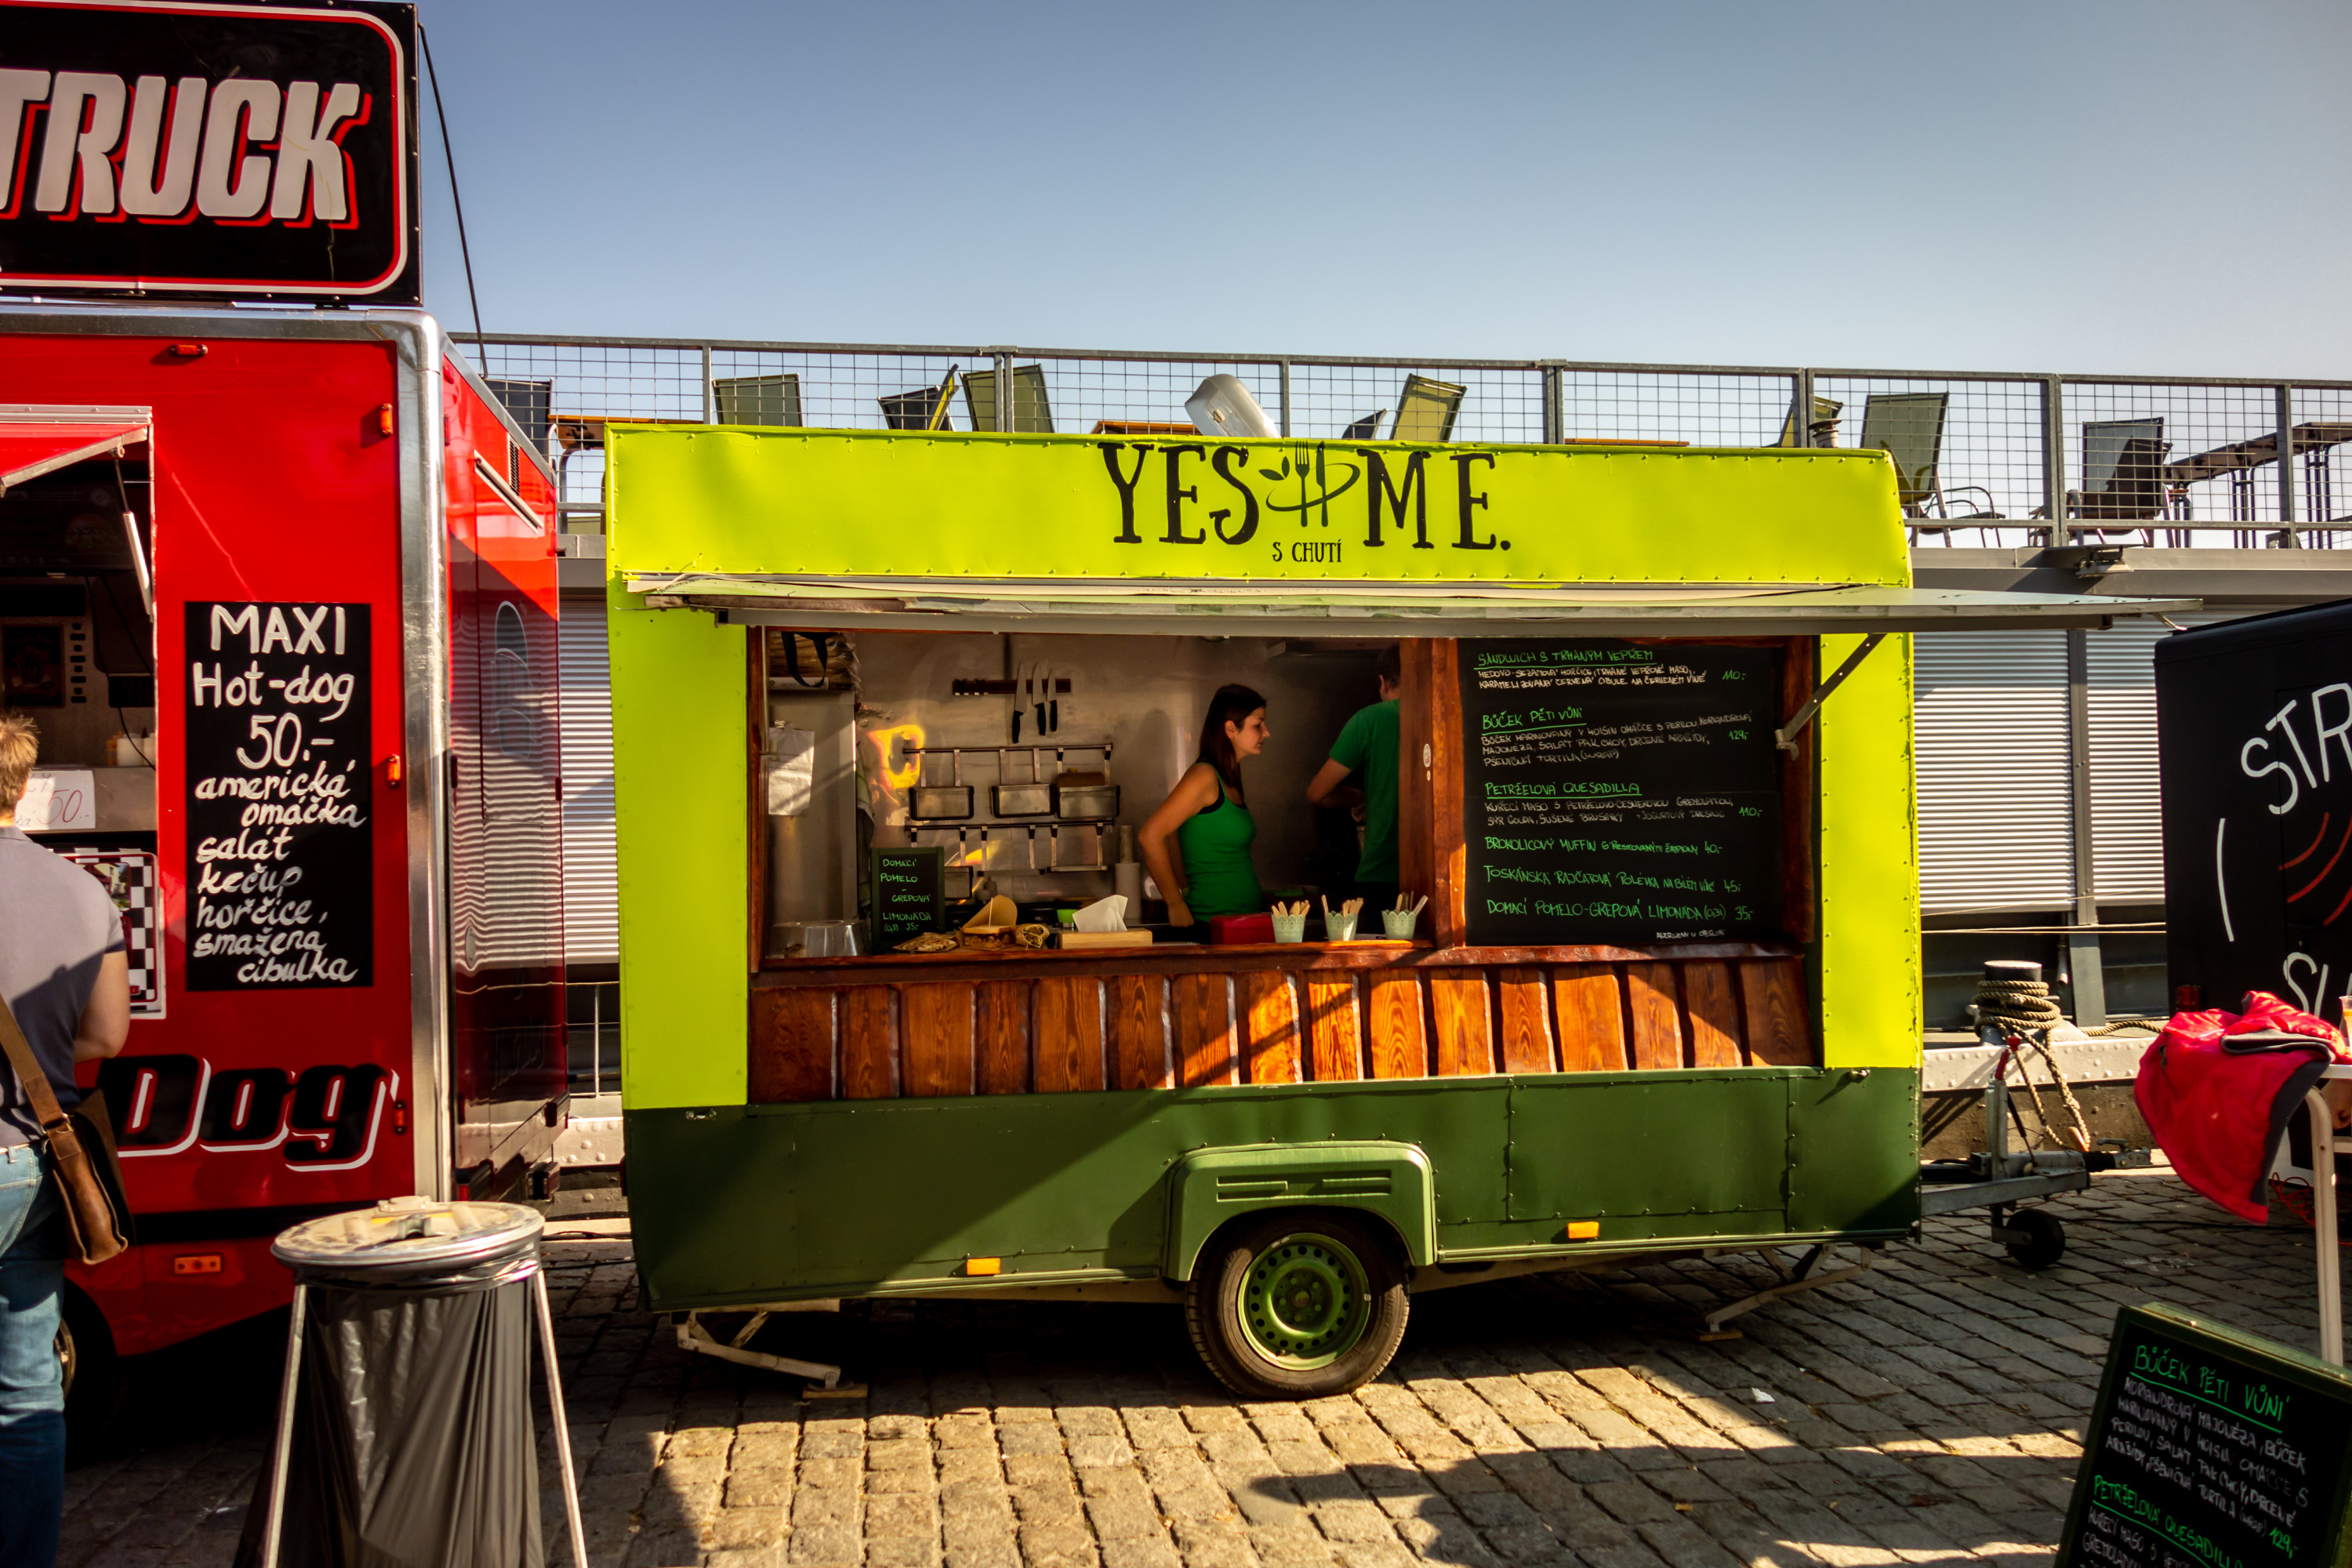 Food Truck Show 2018 - Yes Me